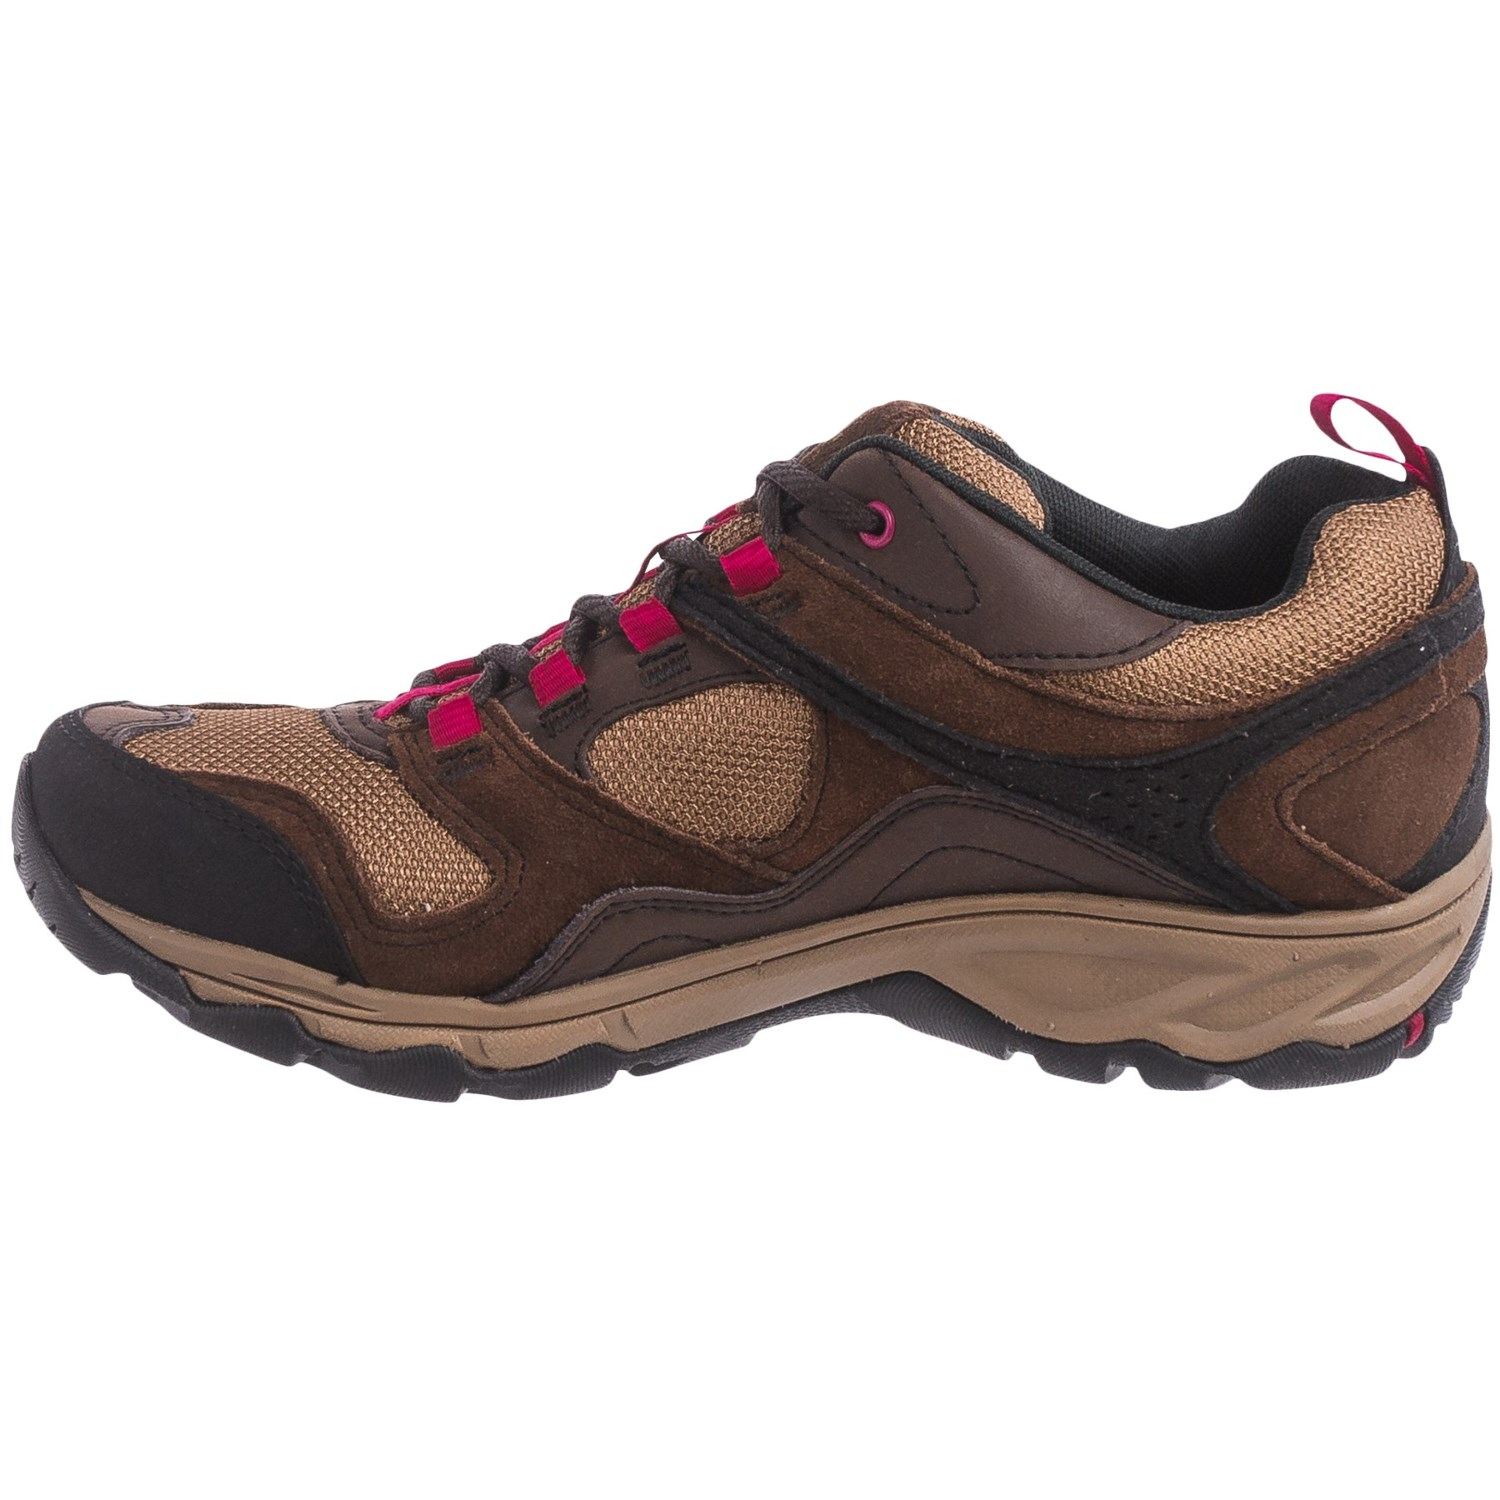 merrill women Introducing the merrell trail glove 4 womens barefoot shoes from merrell merrell women's encore q2 slide ltr climbing shoe by merrell $7663 - $19861 $ 76 63-$ 198 61 prime free shipping on eligible orders some sizes/colors are prime eligible 43 out of 5 stars 89 merrell women's bare access flex sneaker.